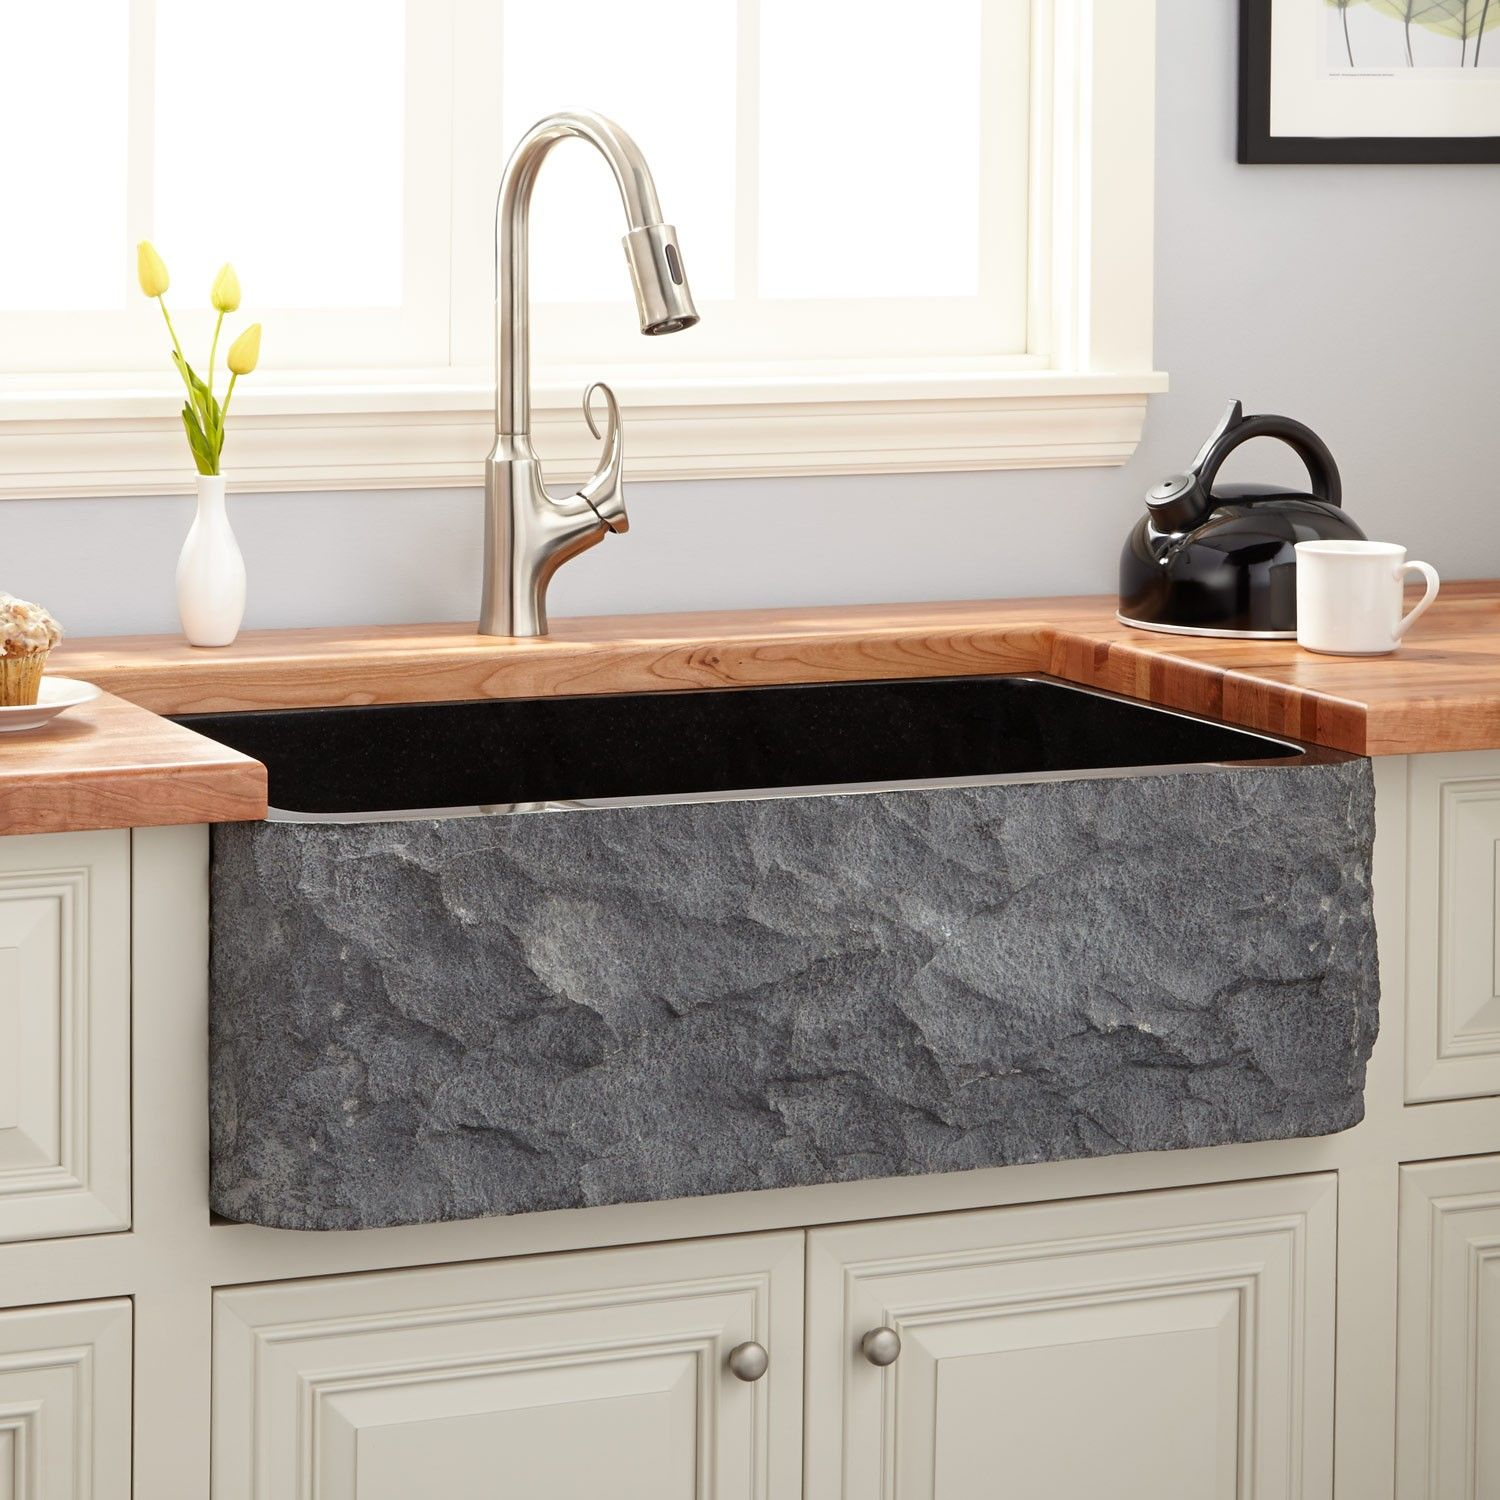 Awesome Farm House Kitchen Sinks Spulbecken Design Granit Kuche Kuche Ideen Bauernhaus